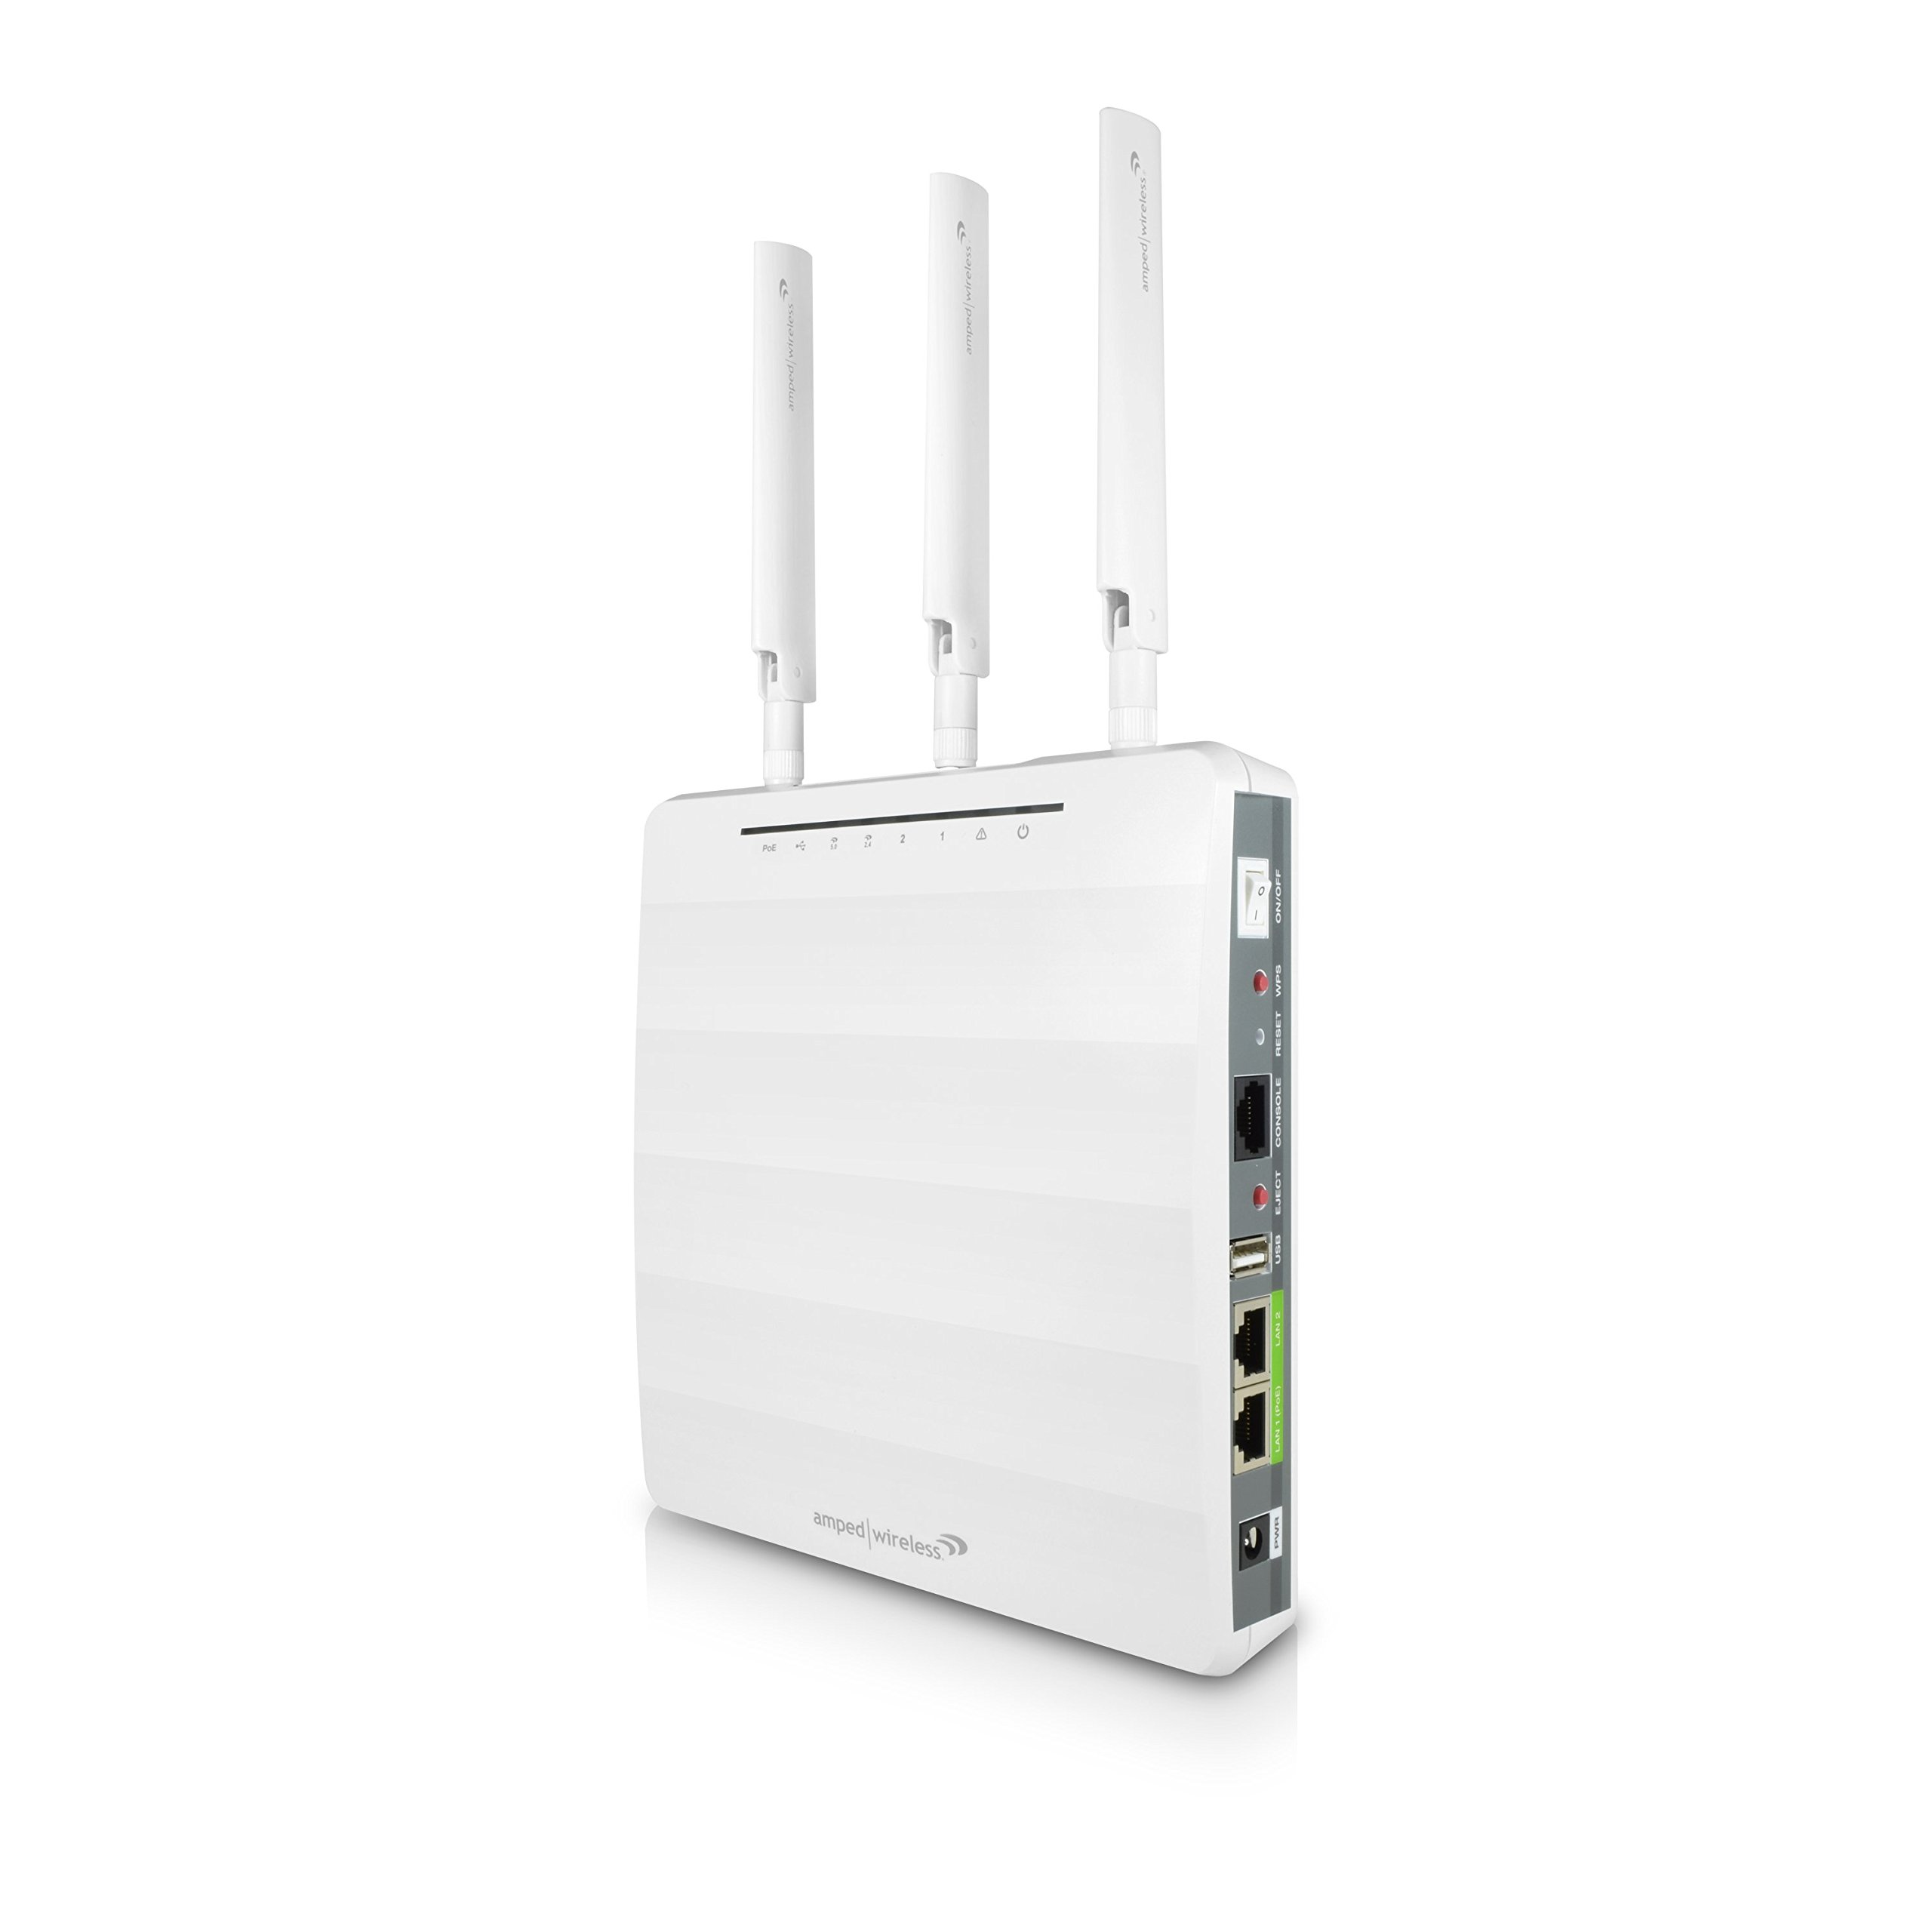 Amped Wireless ProSeries High Power AC1750 Wi-Fi Range Extender / Bridge (REB175P) by Amped (Image #3)